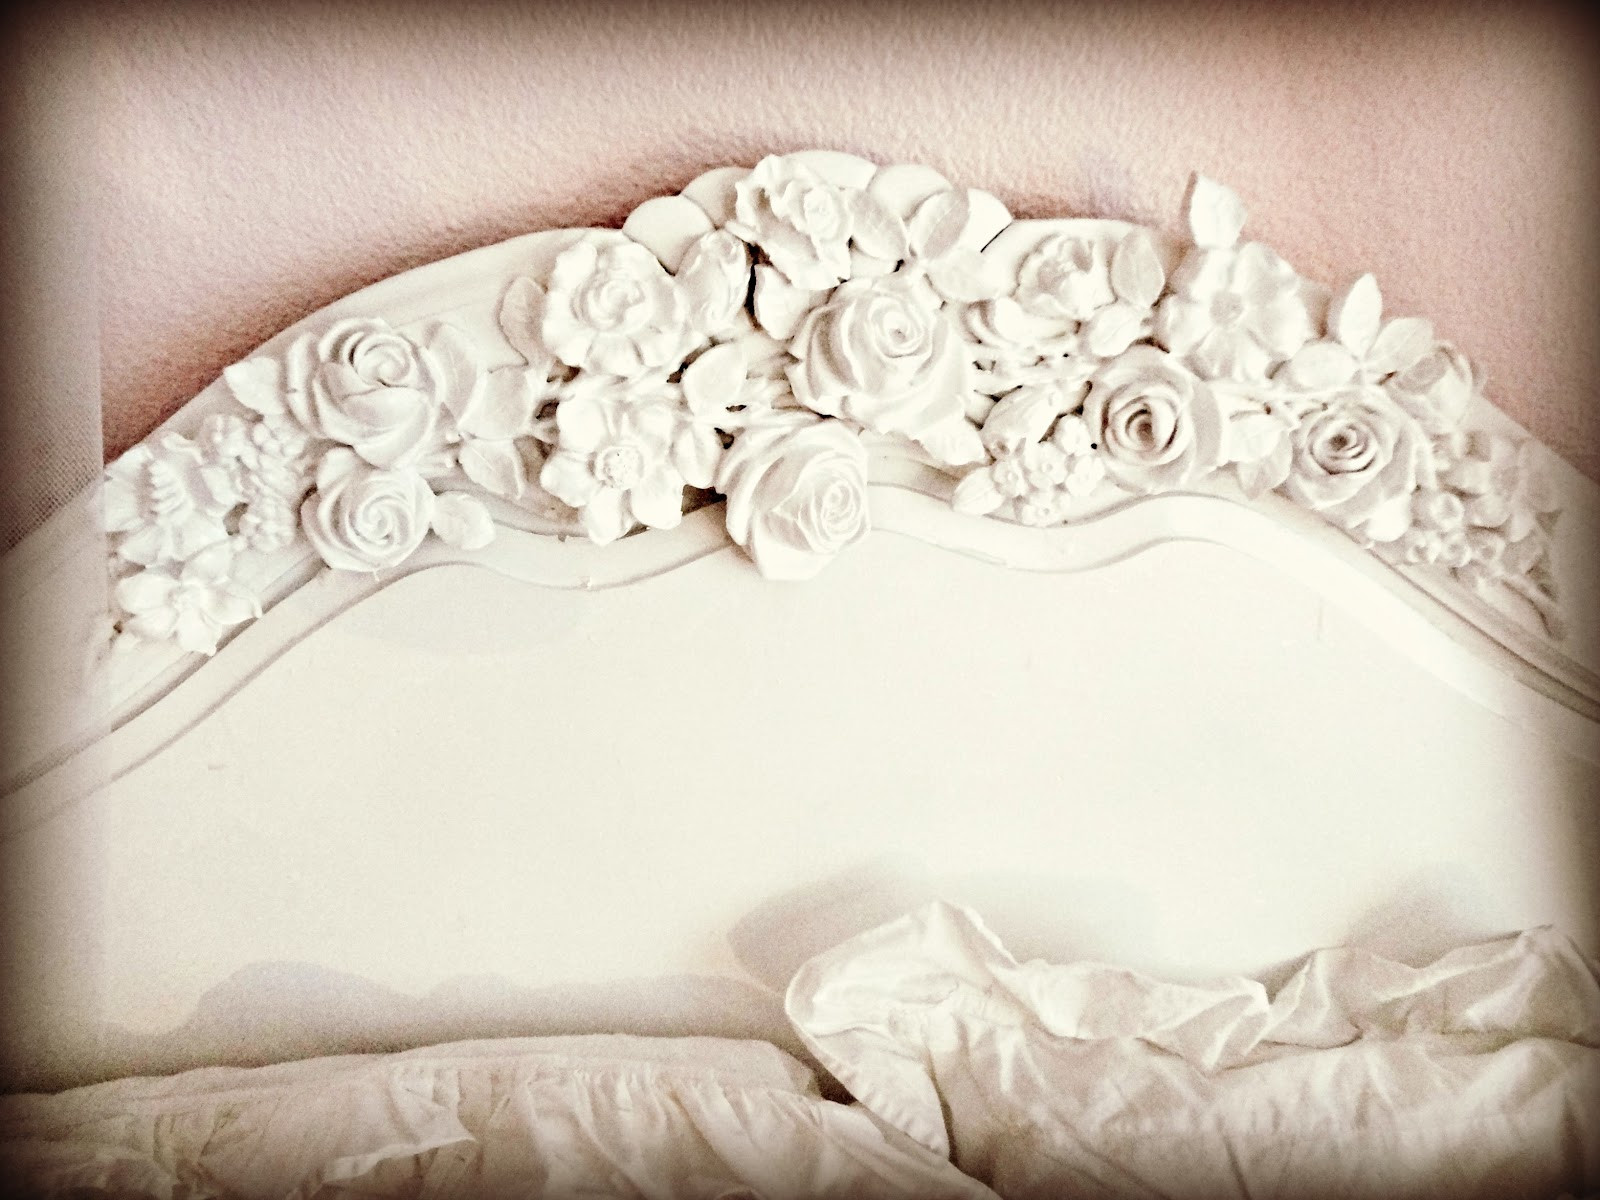 Best ideas about Shabby Chic Headboard . Save or Pin Not So Shabby Shabby Chic Shabby Chic style headboard Now.